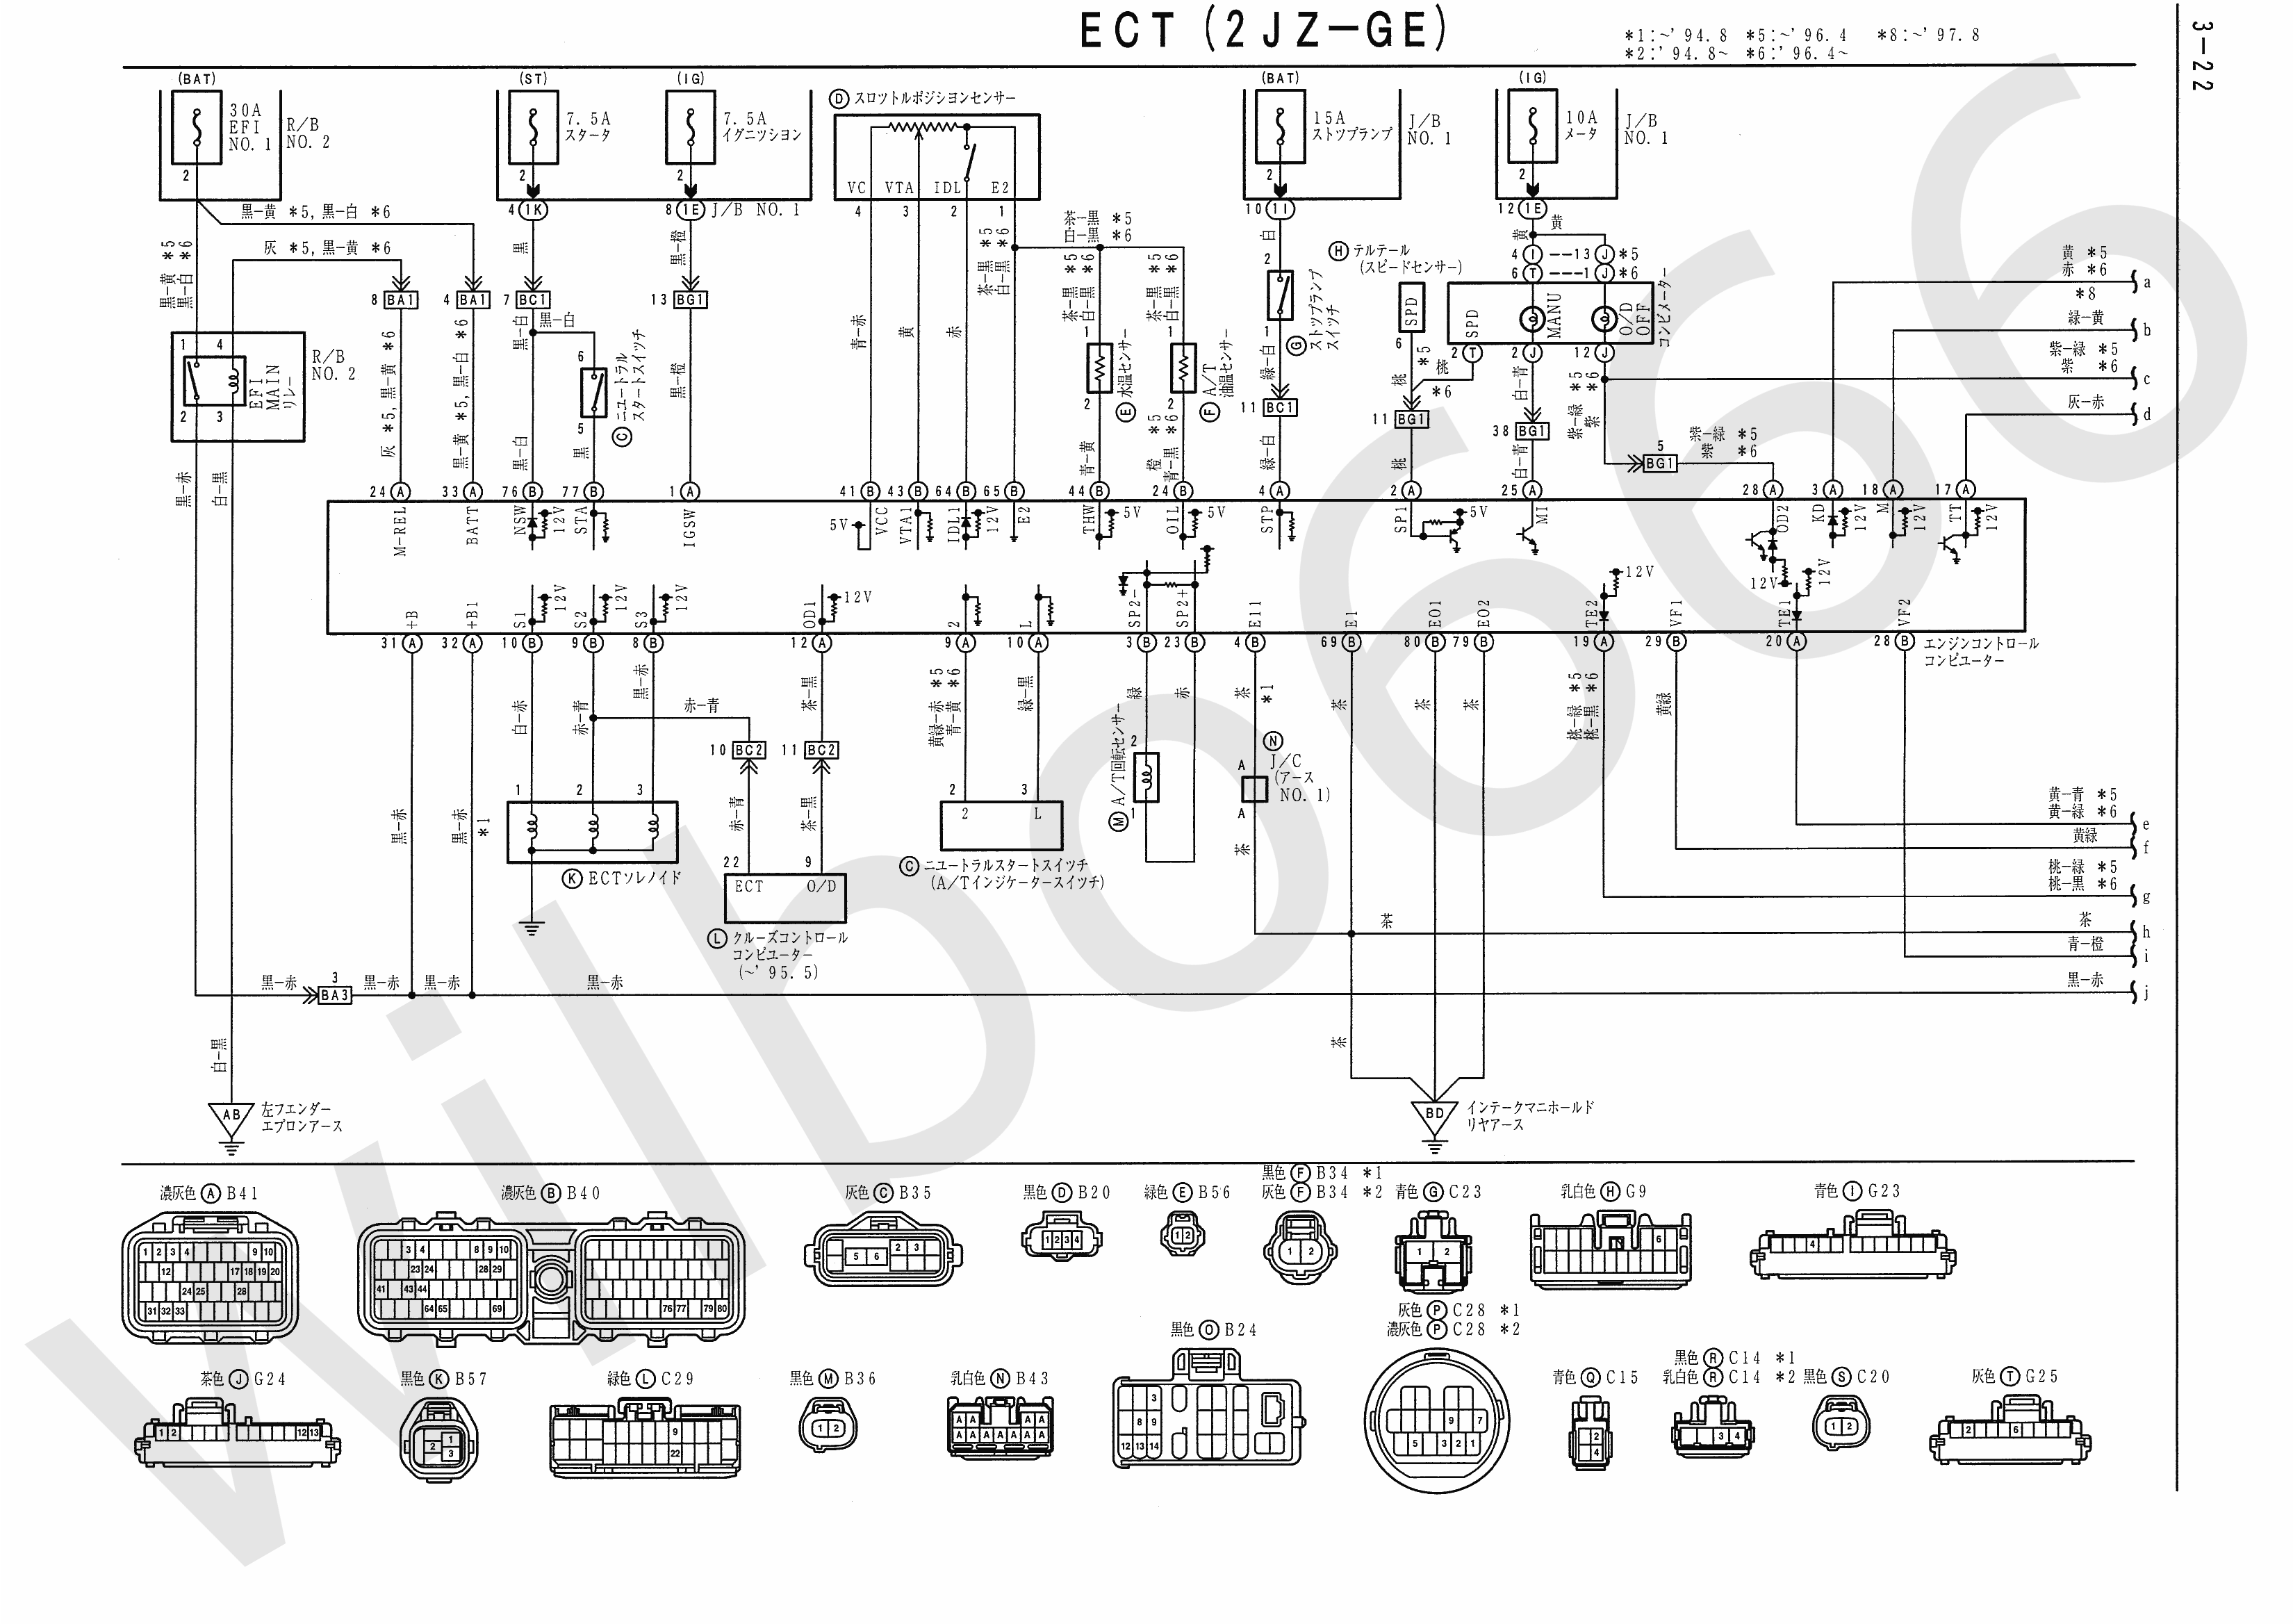 1991 Toyota Mr2 Fuse Box Pin Out : 32 Wiring Diagram